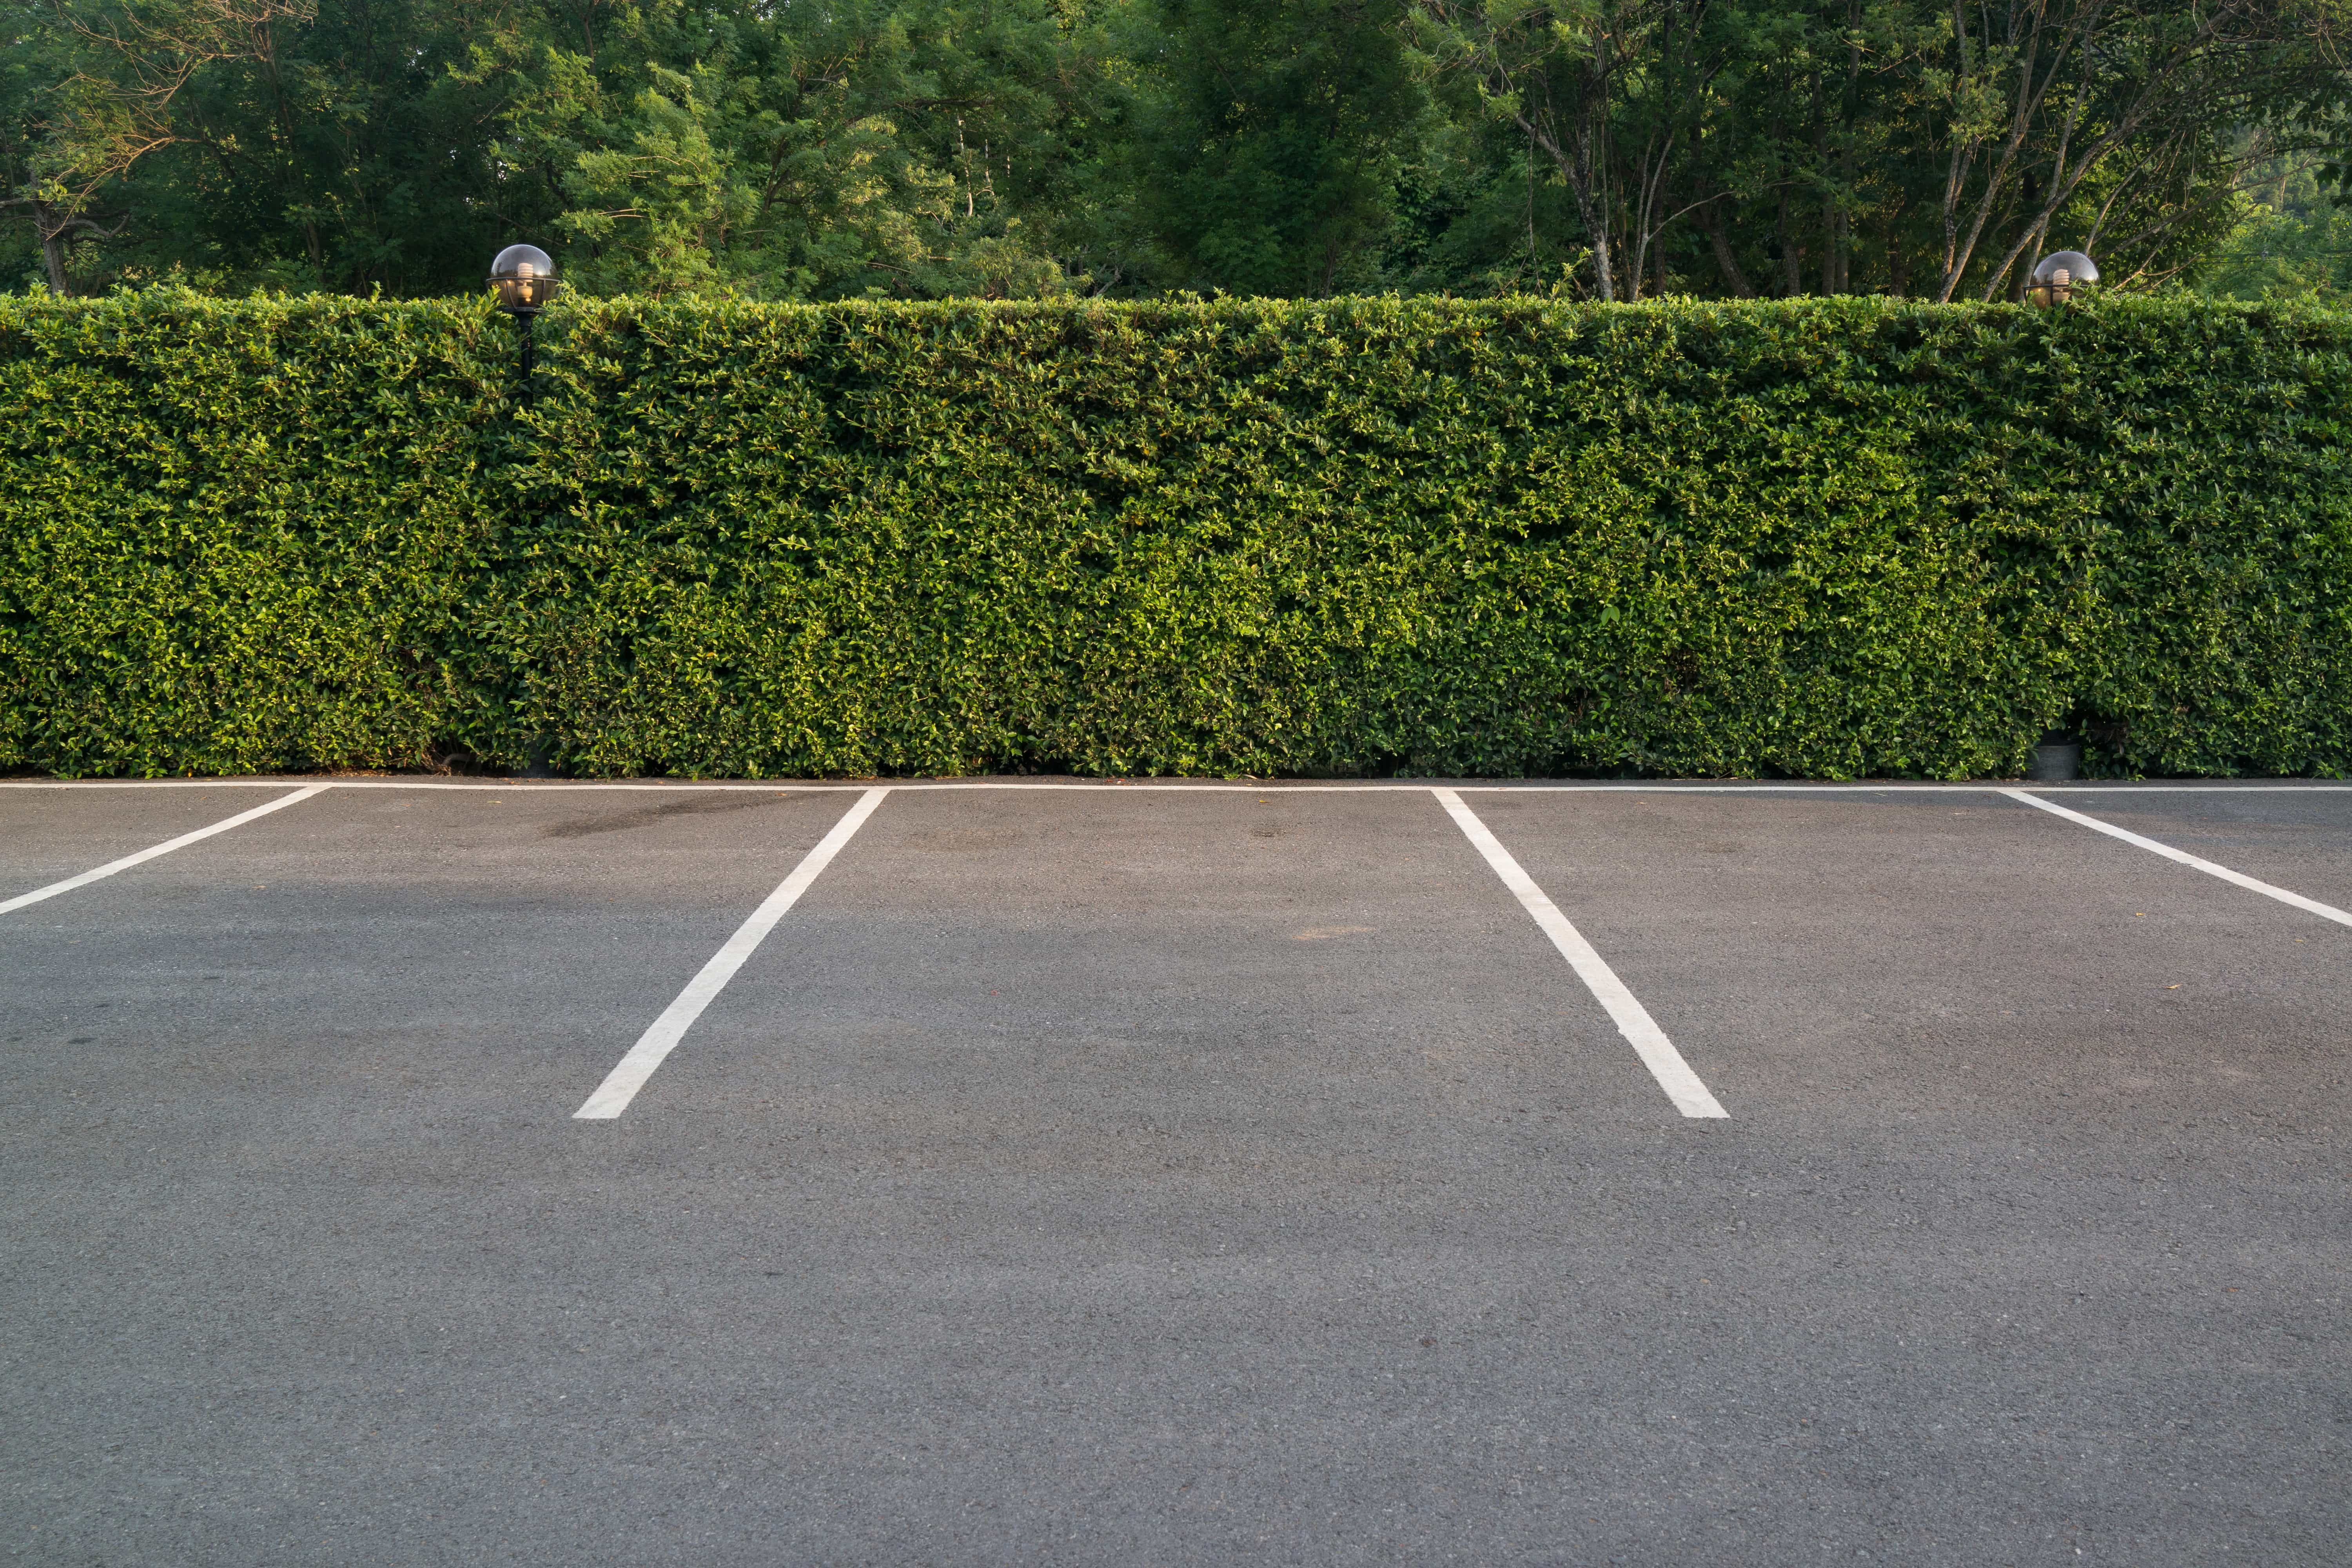 Permeable Paver Cost 5 Ways To Reduce Parking Lot Costs Permeable Pavers Parking Lot Striping Pavers